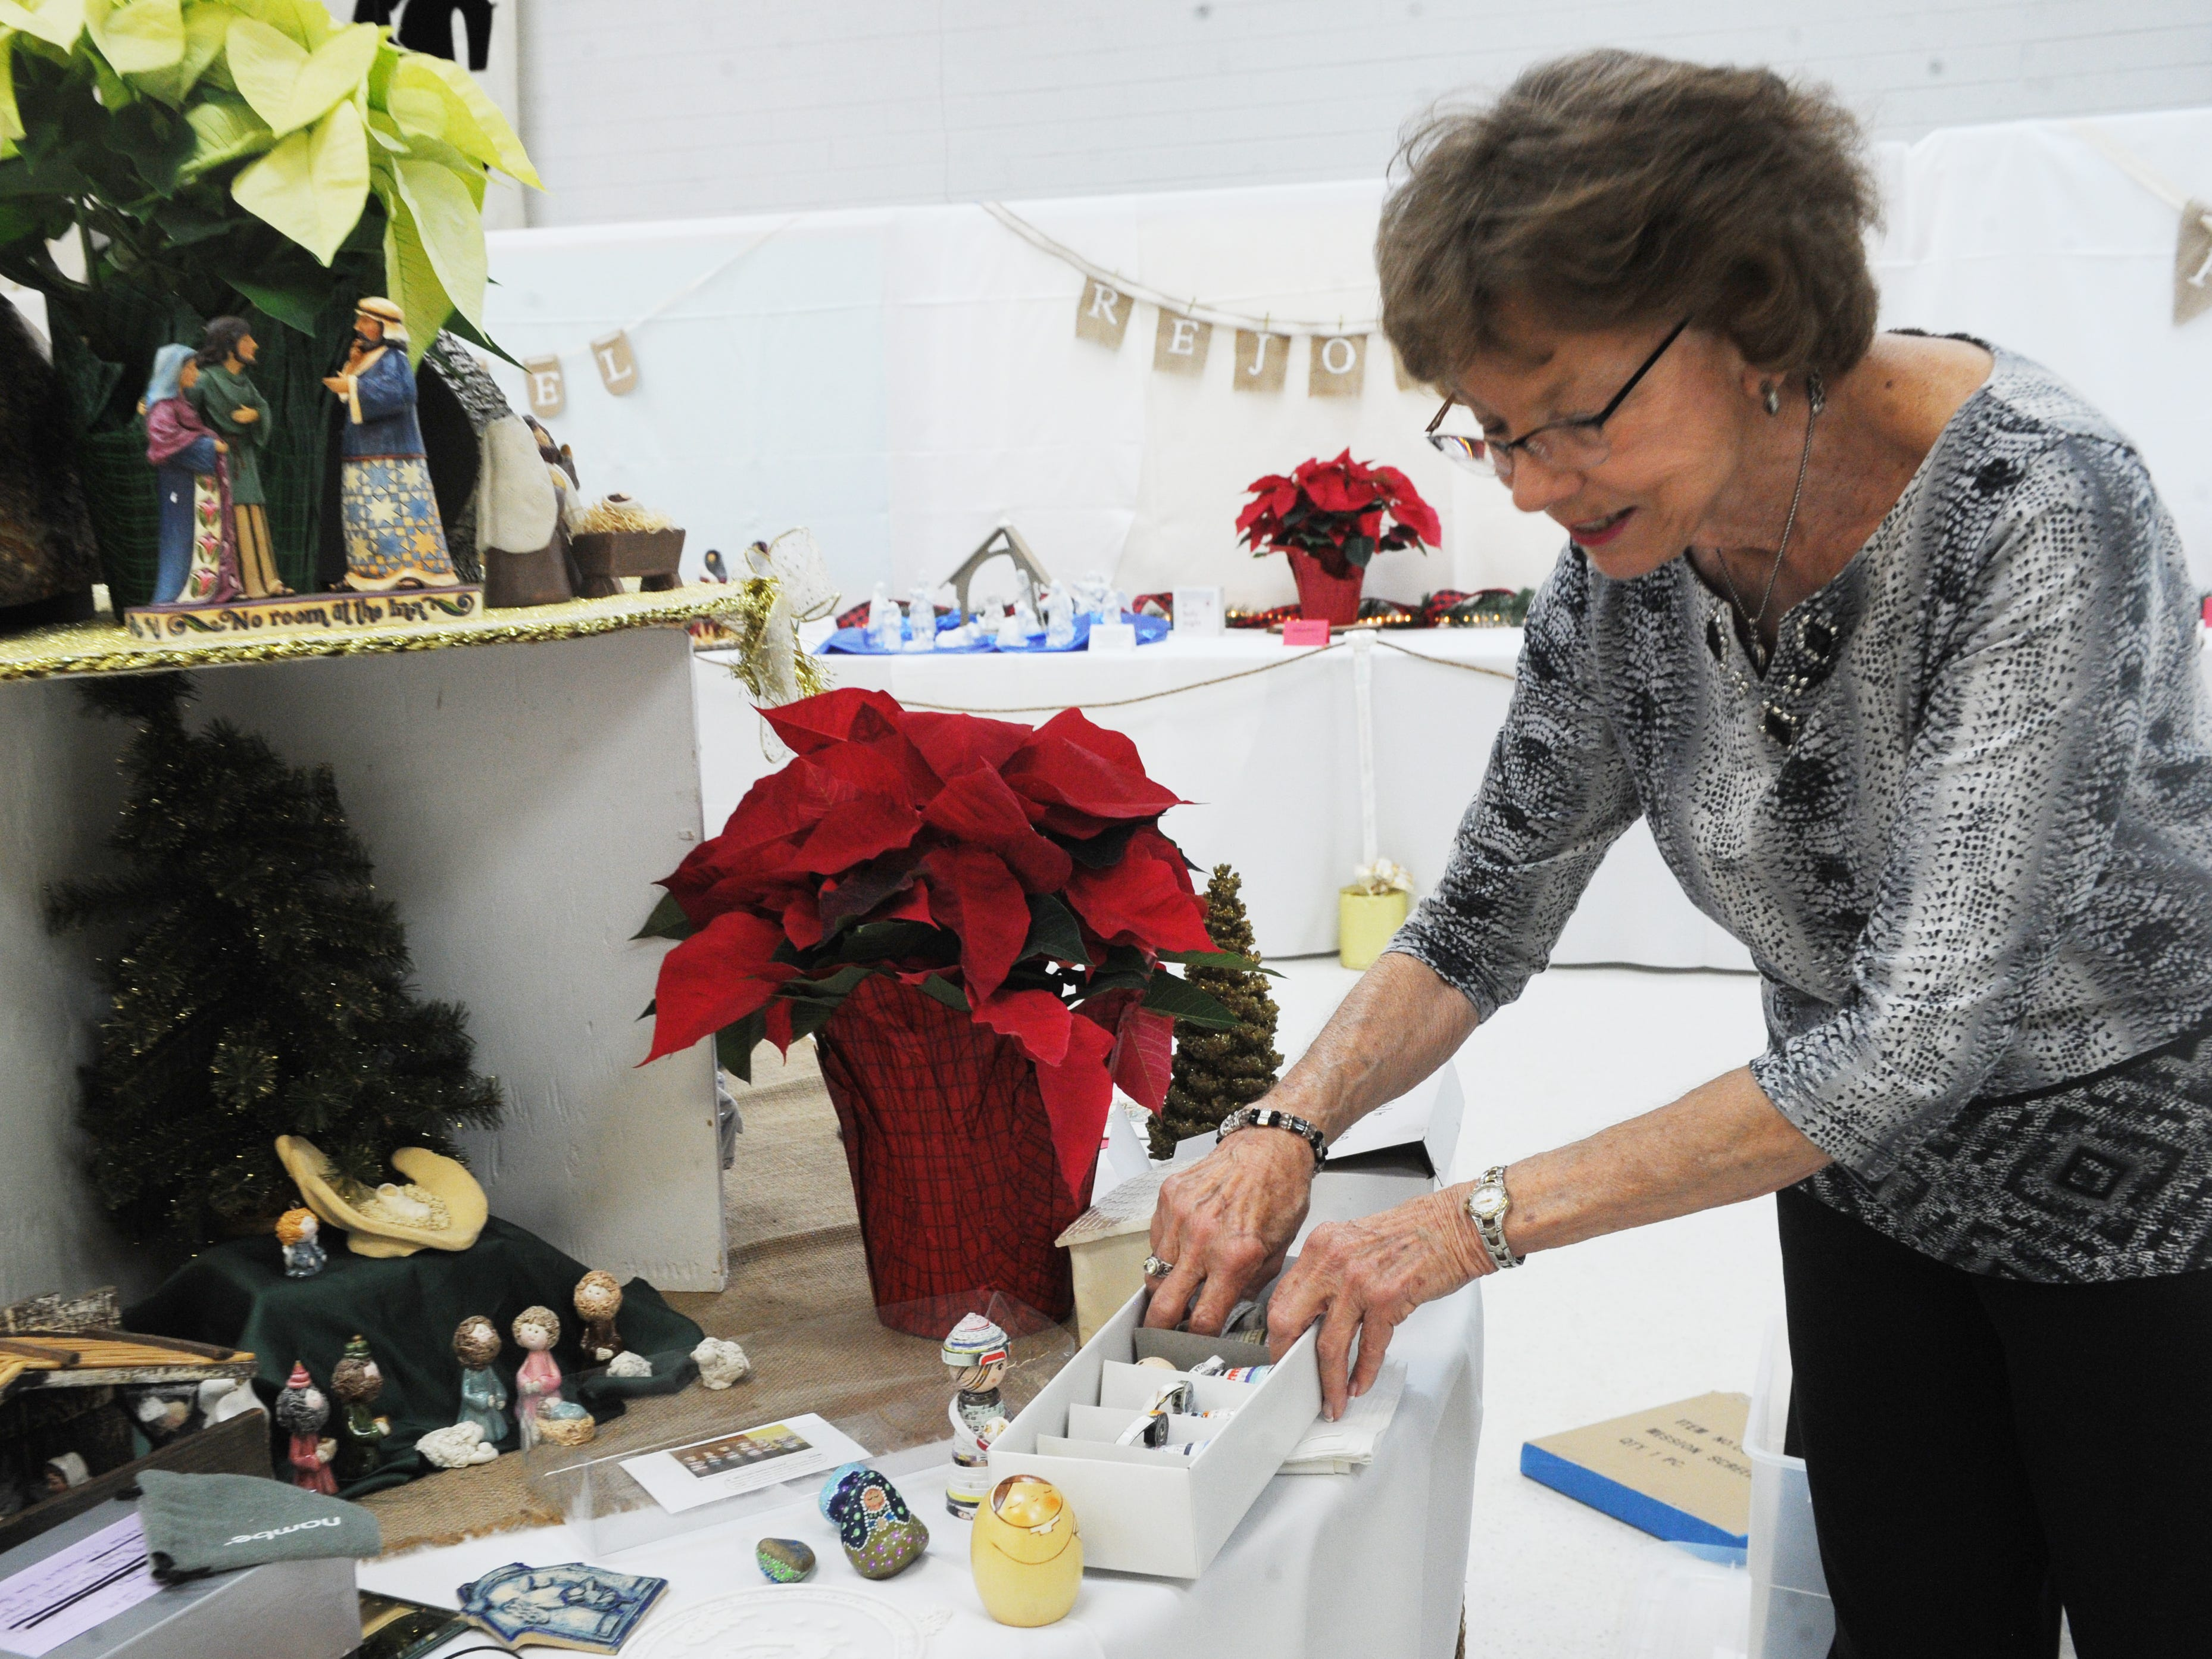 Nora Howells, co-founder of No Room at the Inn, sets up a Nativity scene at the Camarillo United Methodist Church.